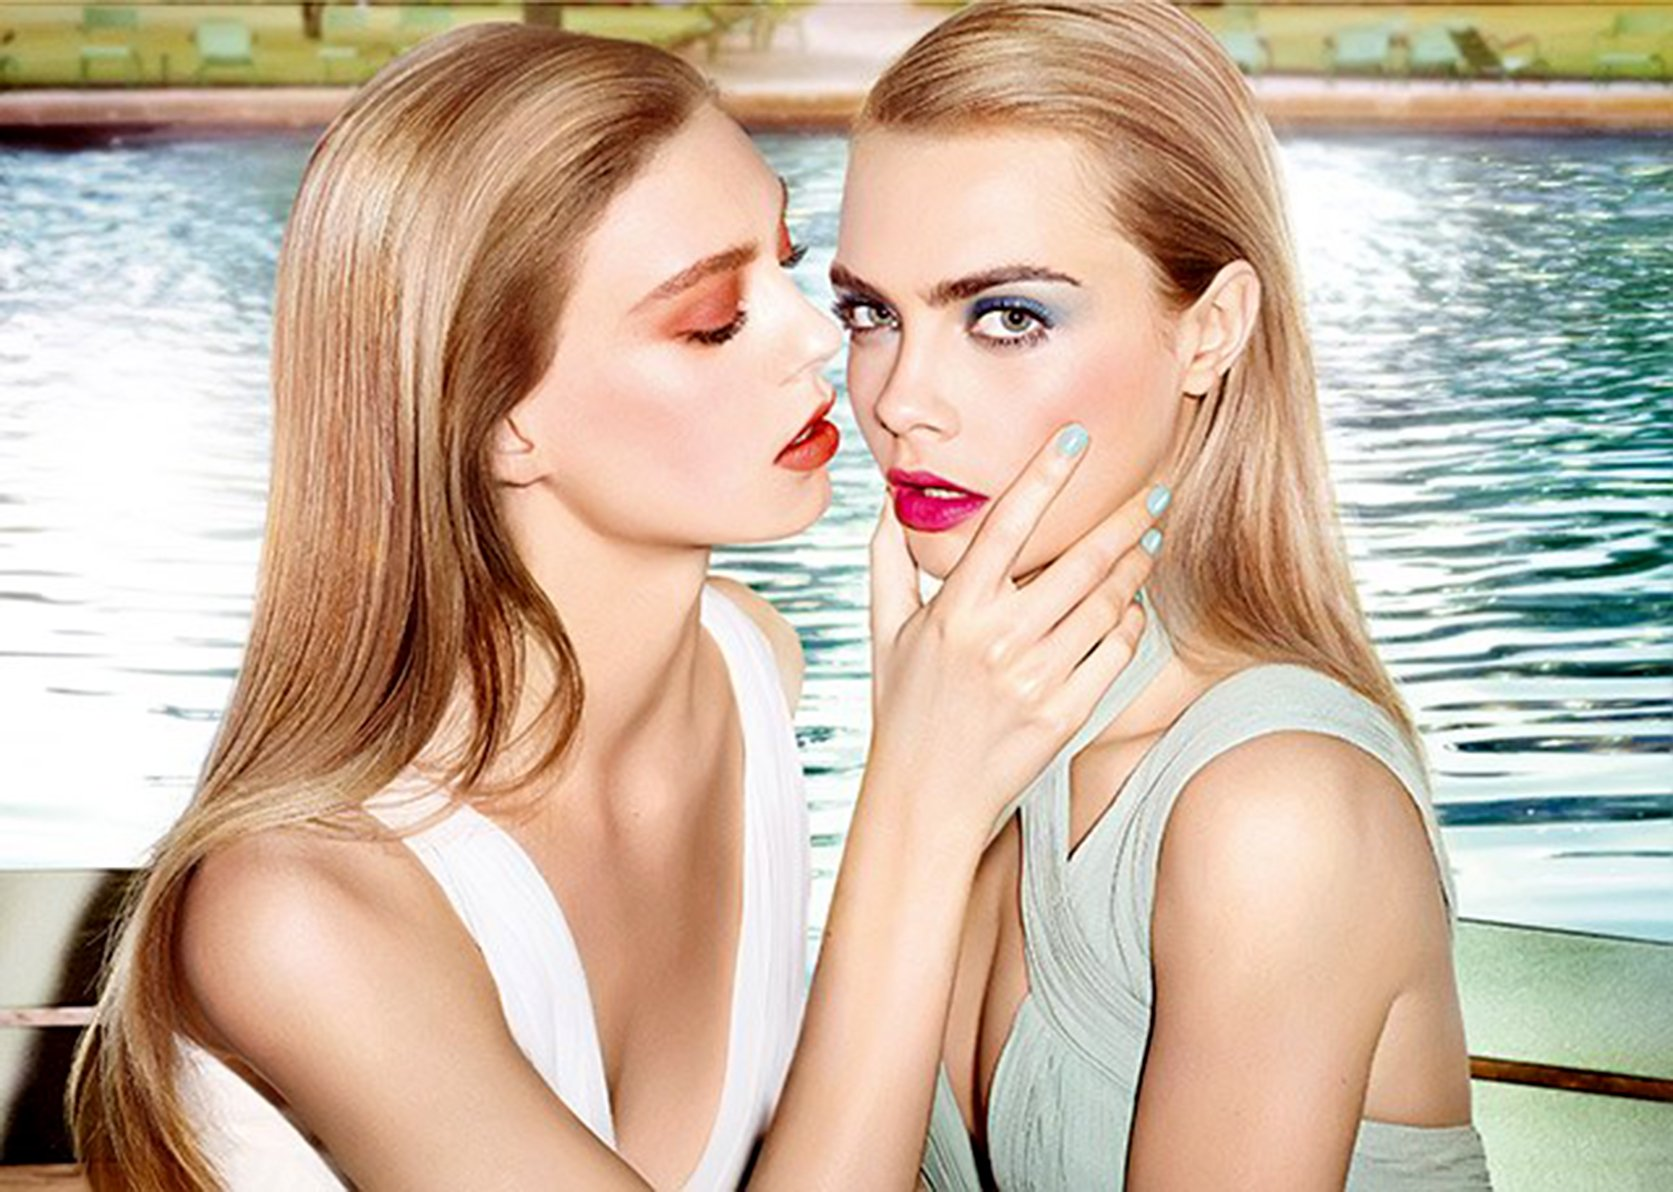 Models Cara Delevingne and Ondria Hardin in a new image for Yves Saint Laurent Baby Doll Kiss Blush Spring Summer 2014 ad campaign., Image: 189419565, License: Rights-managed, Restrictions: EDITORIAL USE / 01 pics., Model Release: no, Credit line: Profimedia, Balawa Pics